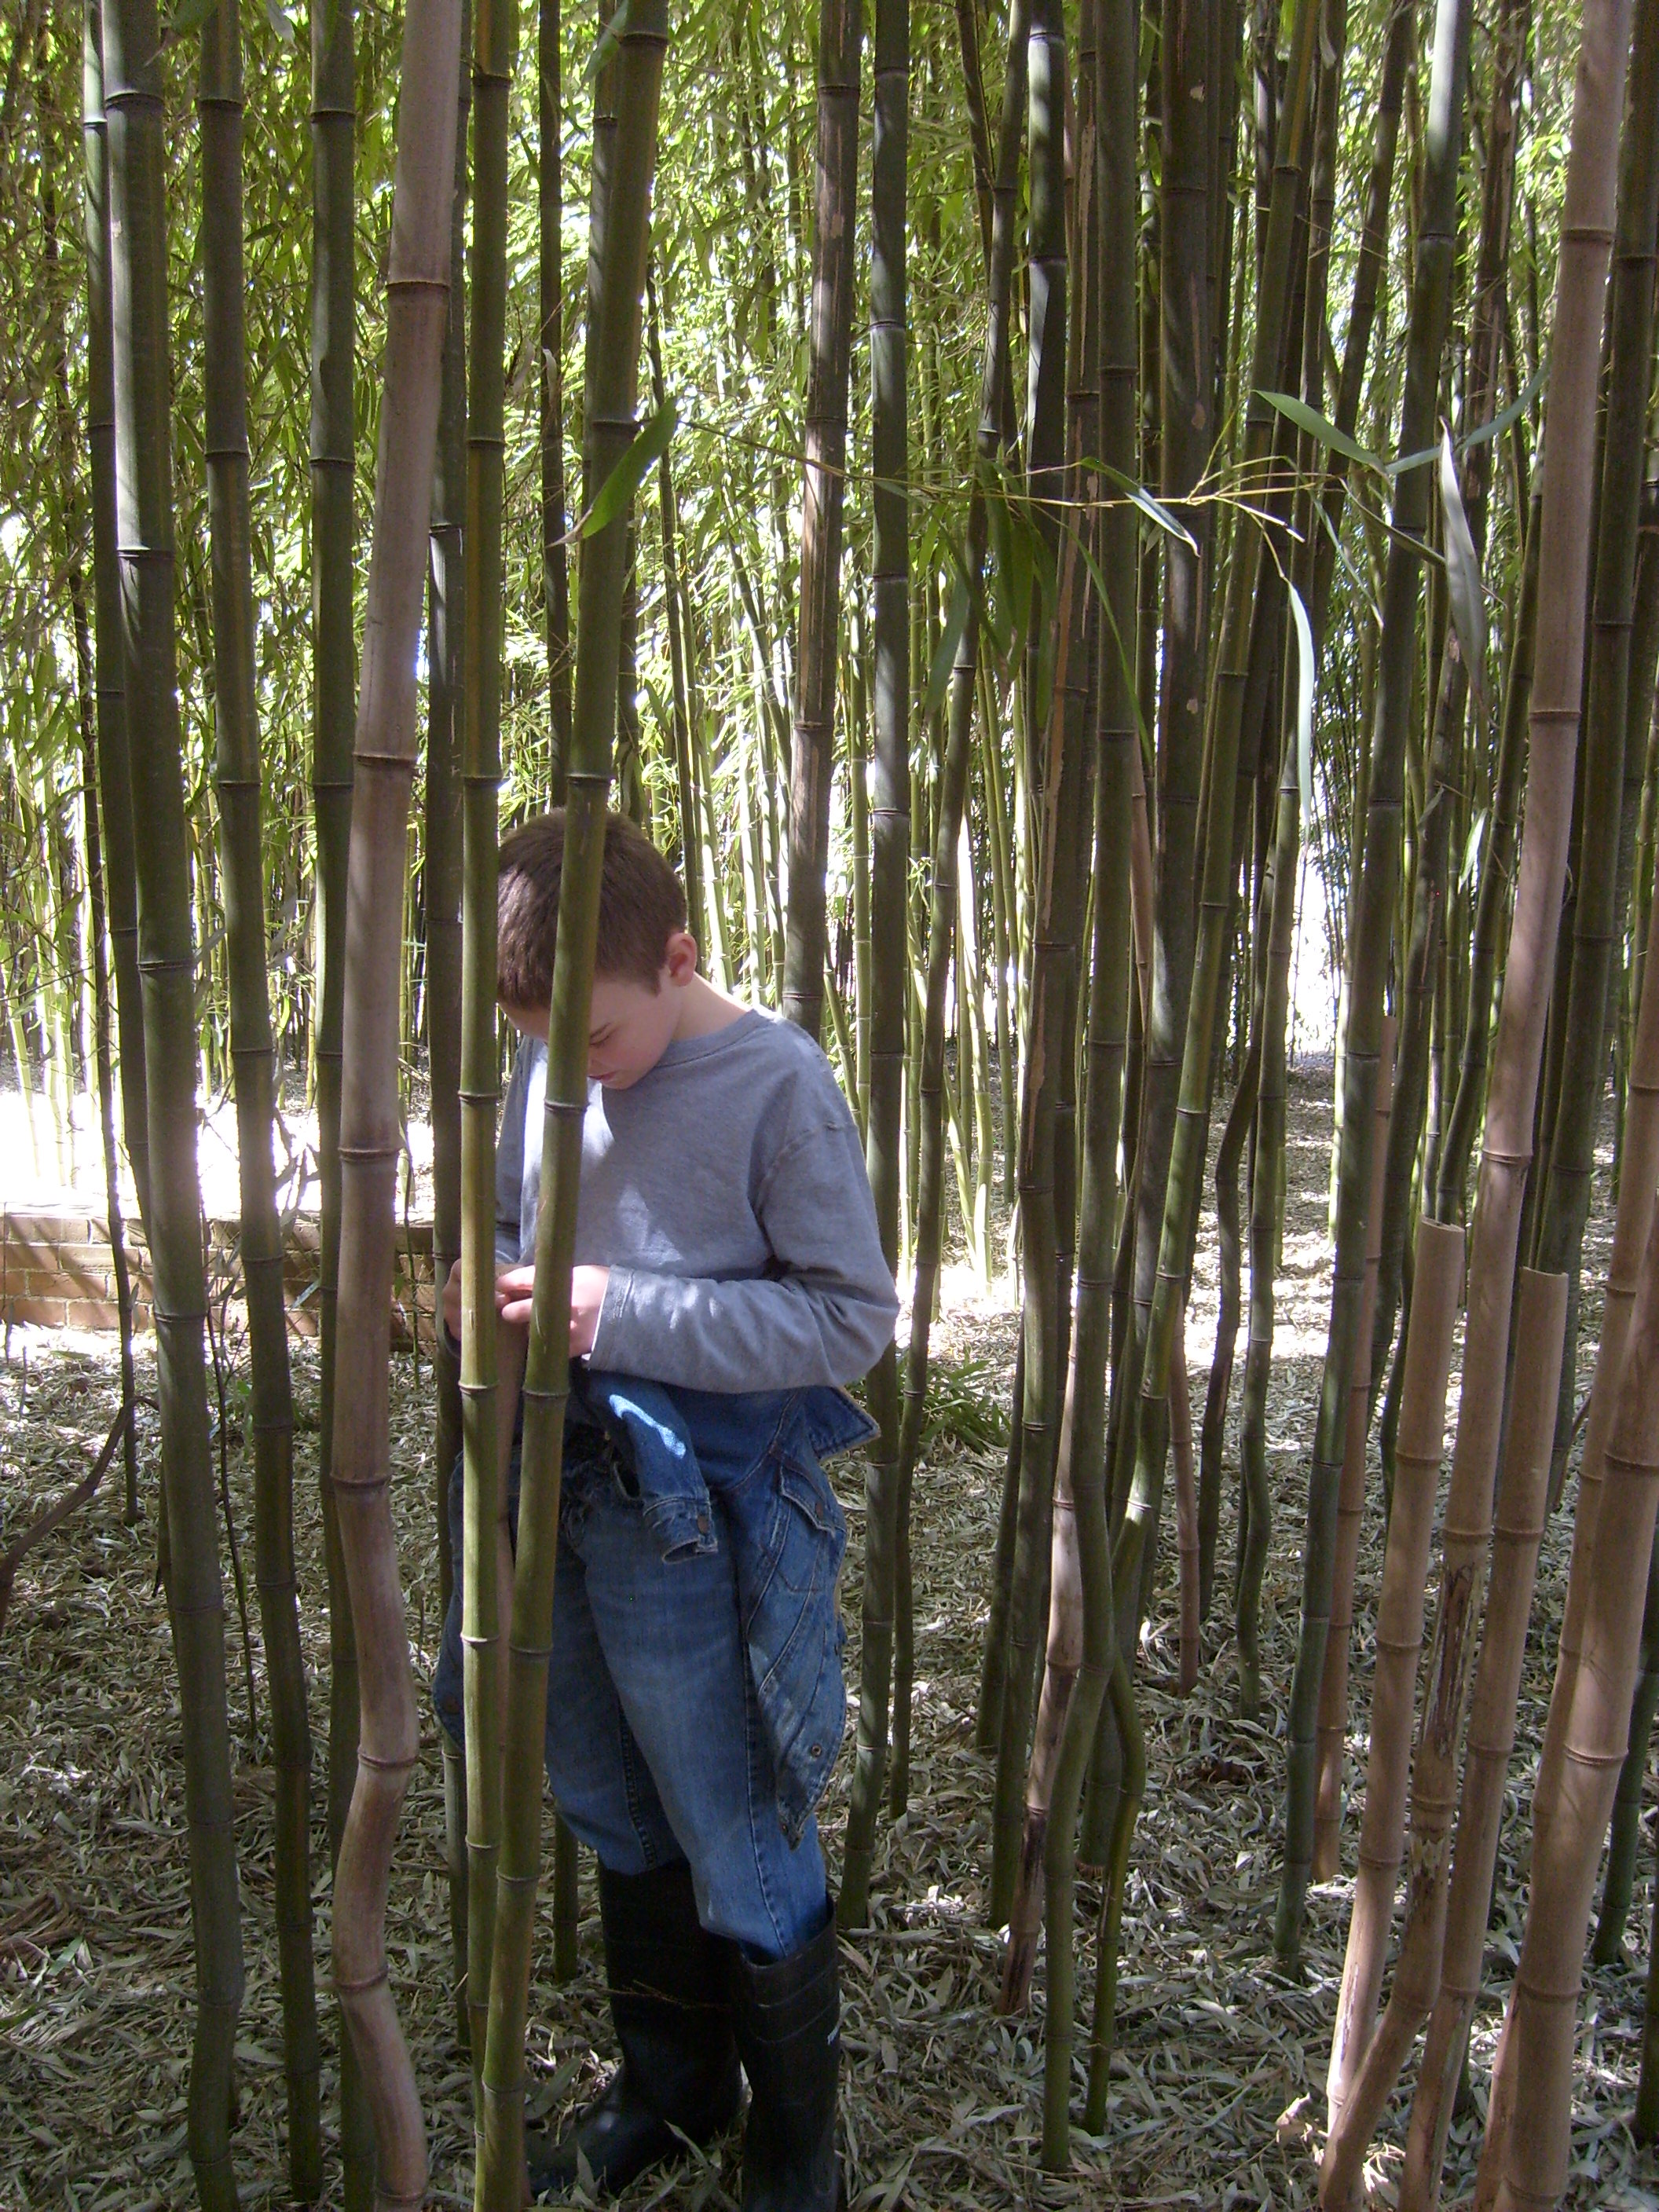 M counting for  hide and go seek in the bamboo grove